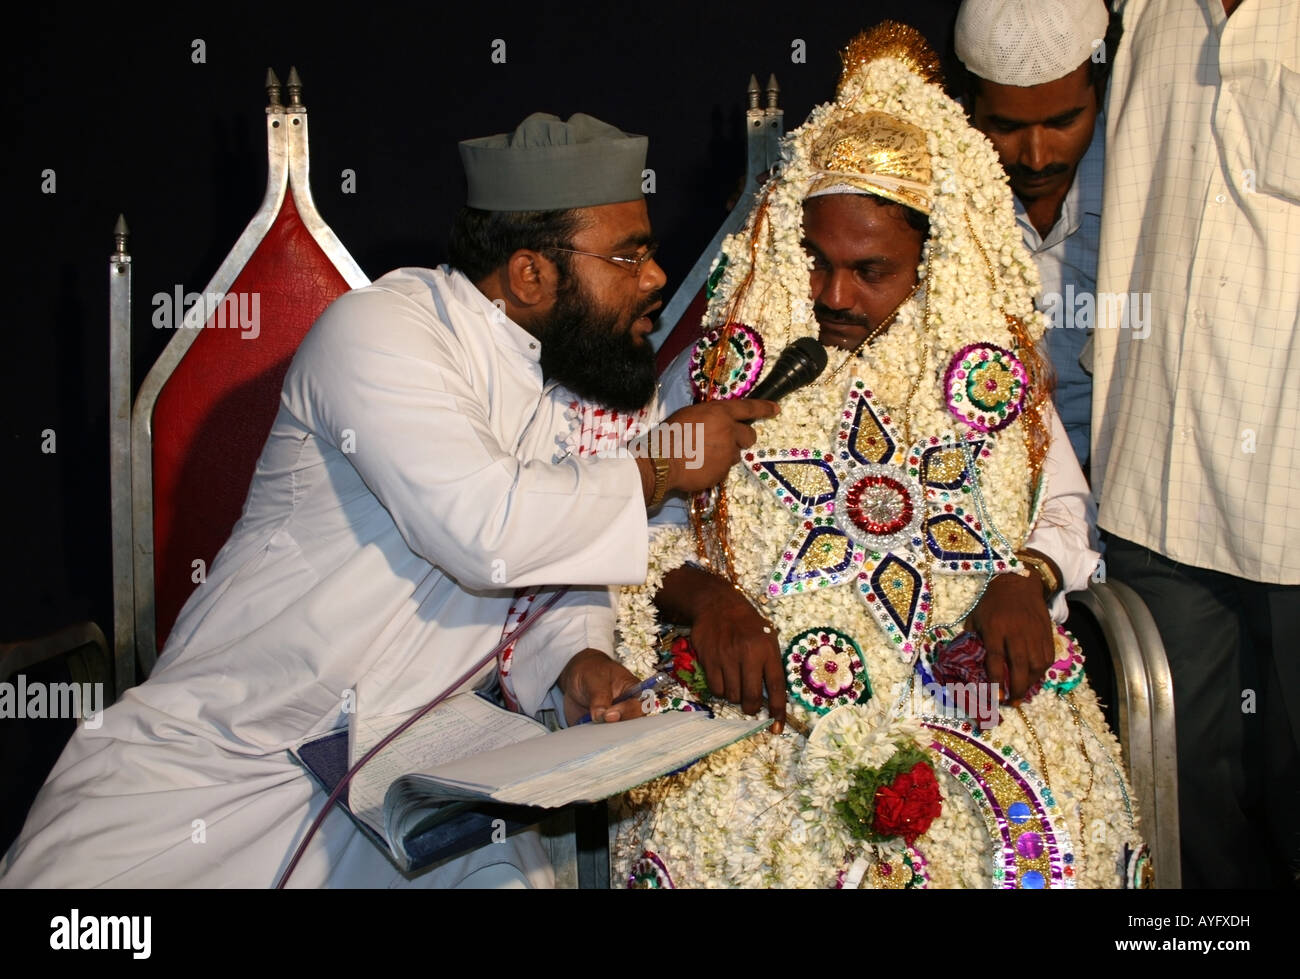 Maulvi Or Imam Conducts Islamic Wedding Ceremony Nikkah With Groom Tamil Nadu South India